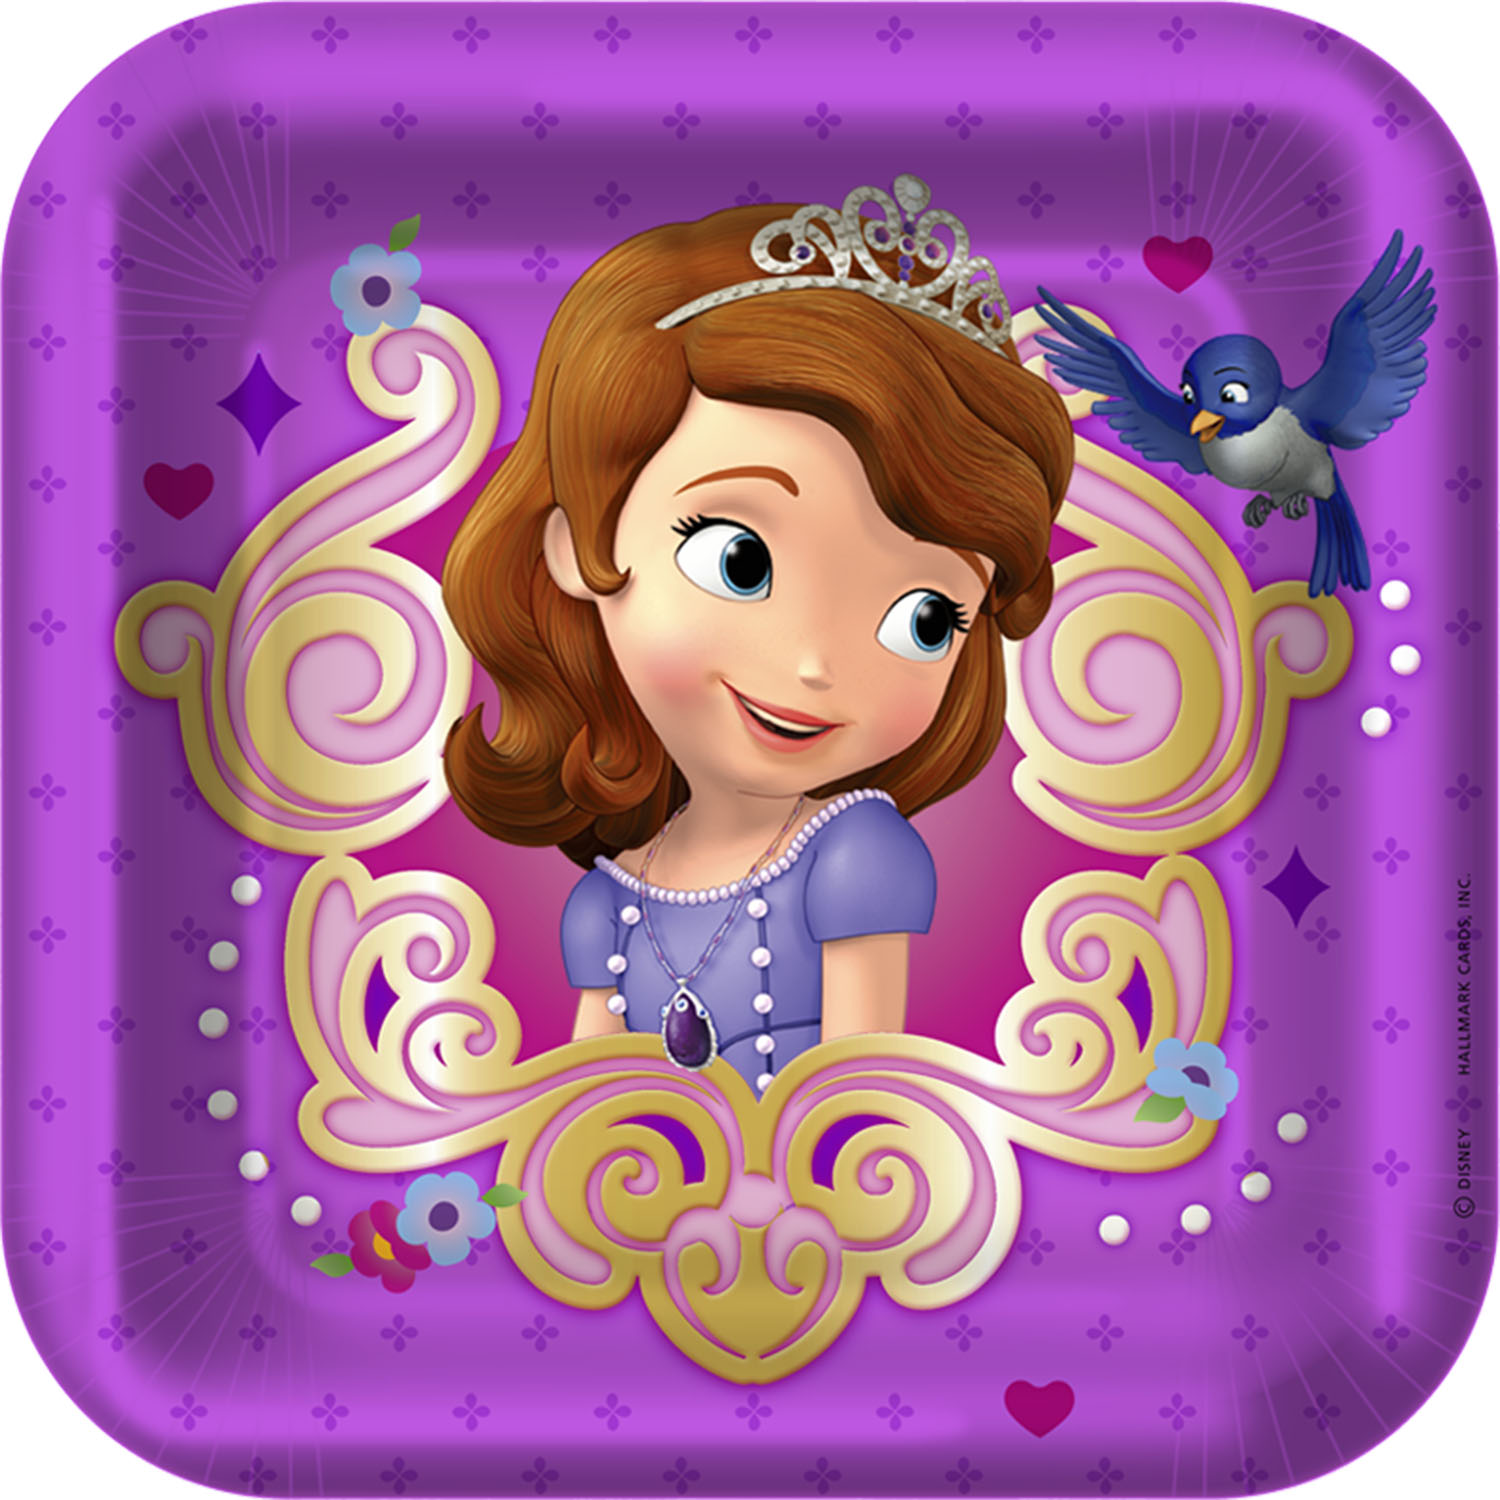 Sofia The First Party Supplies   7 Inch Dessert Plate At ToyStop